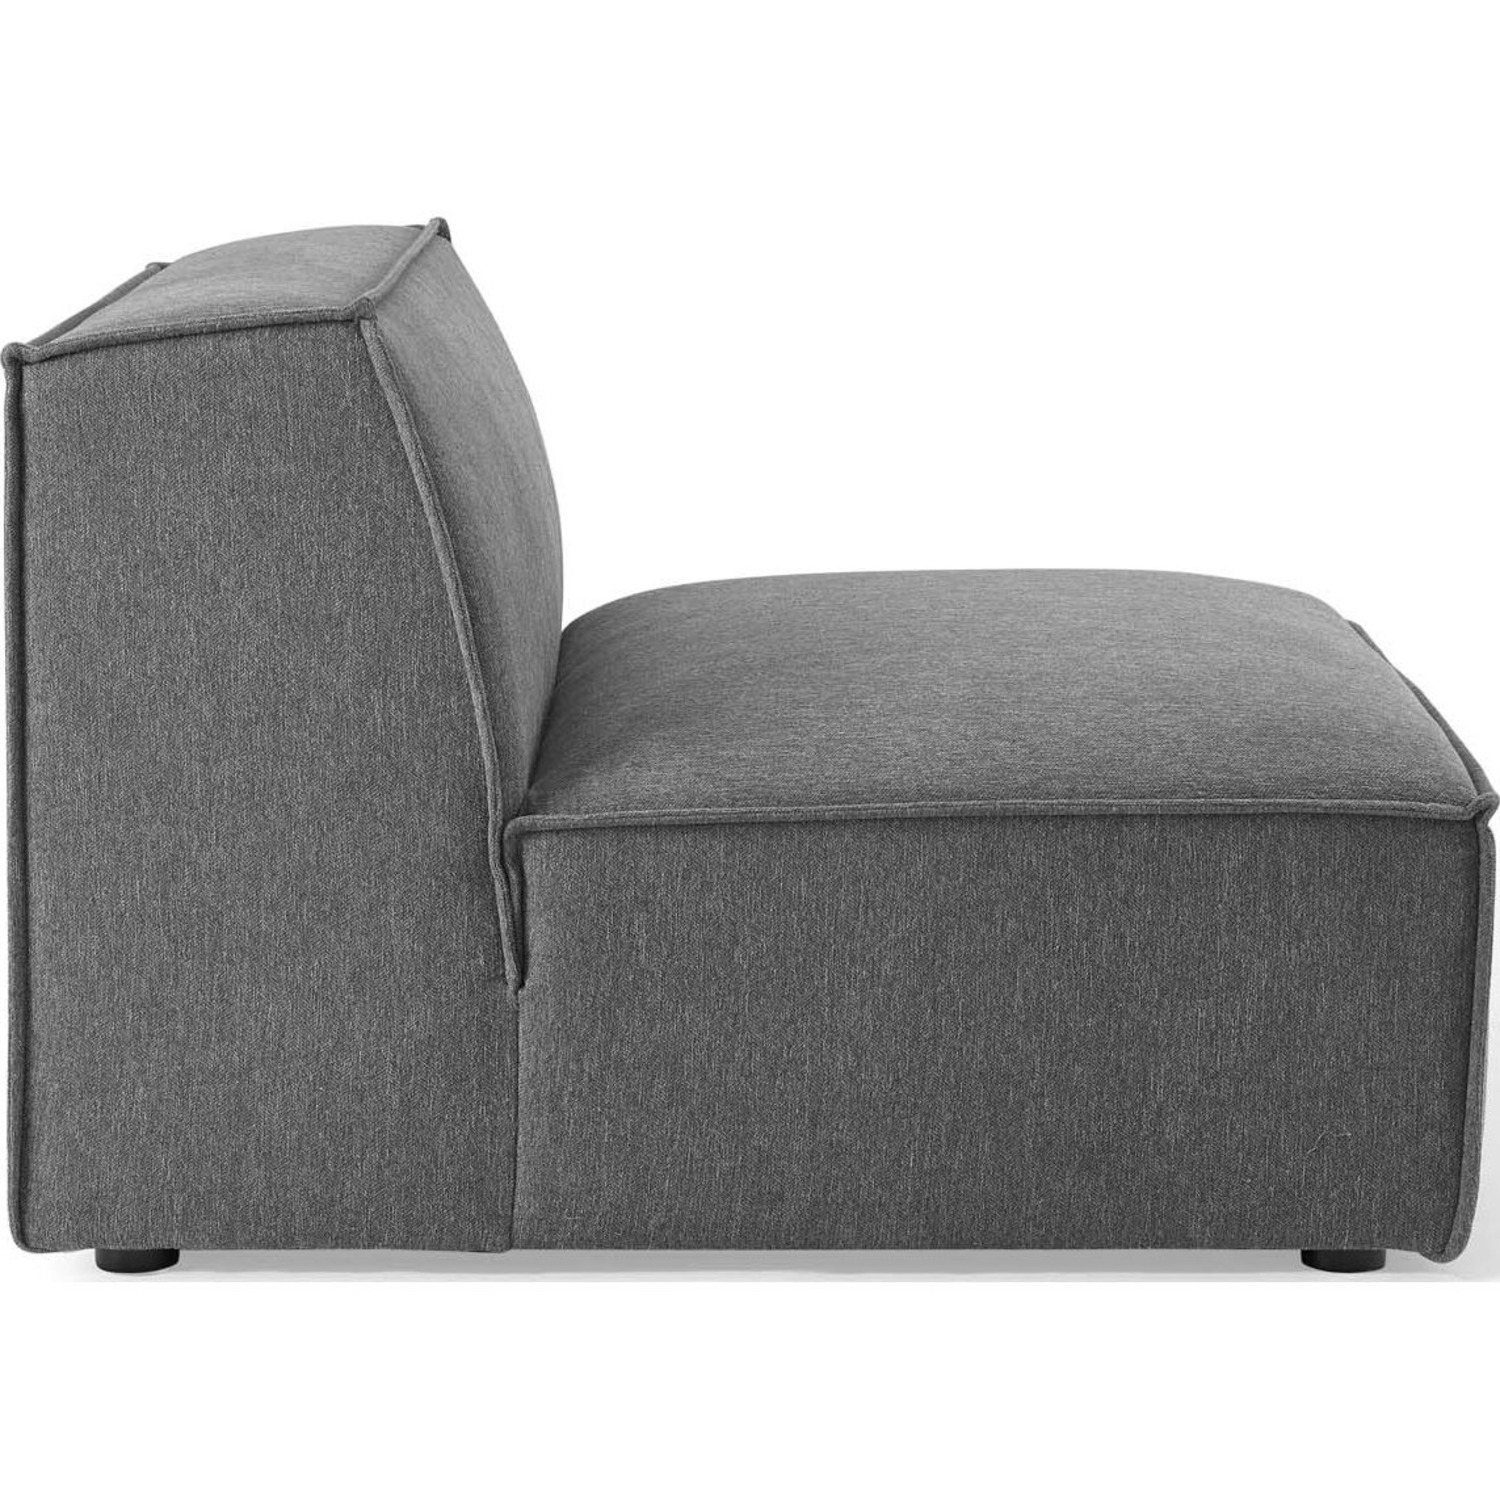 4-Piece Sectional Sofa In Charcoal Fabric - image-7